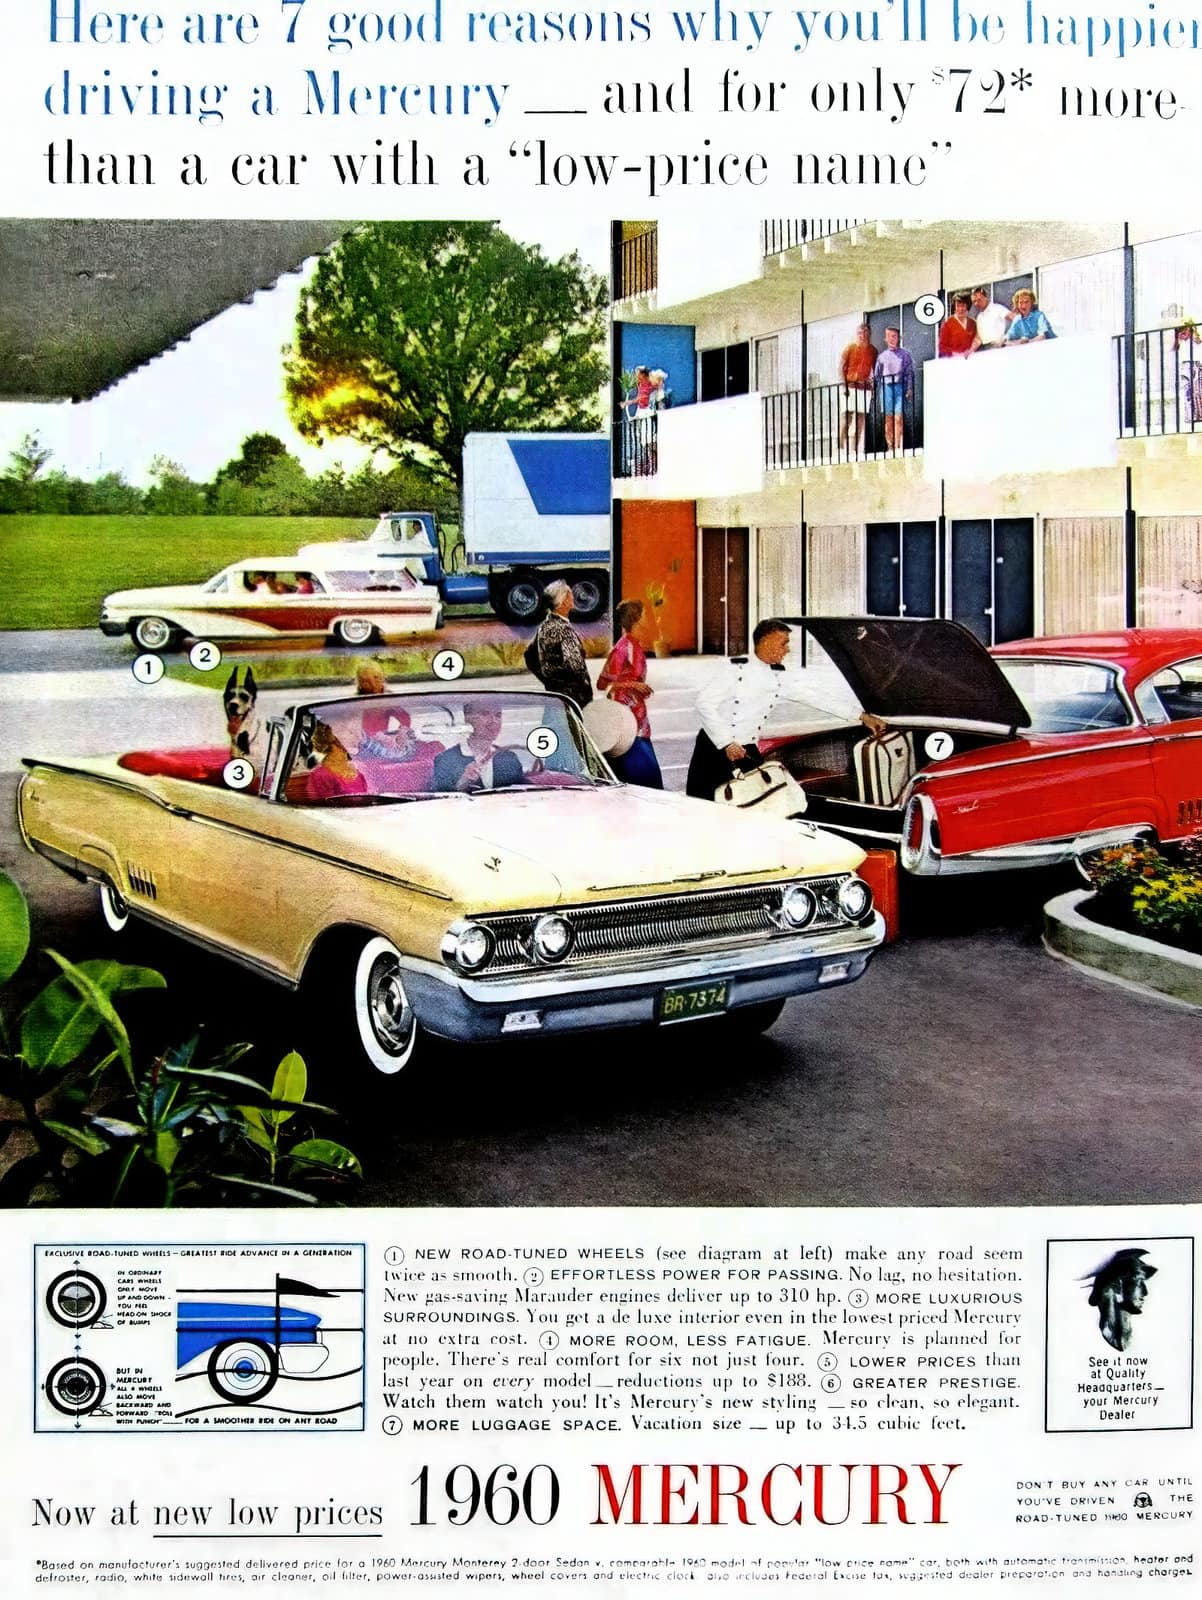 1960 Mercury cars - Motel courtyard